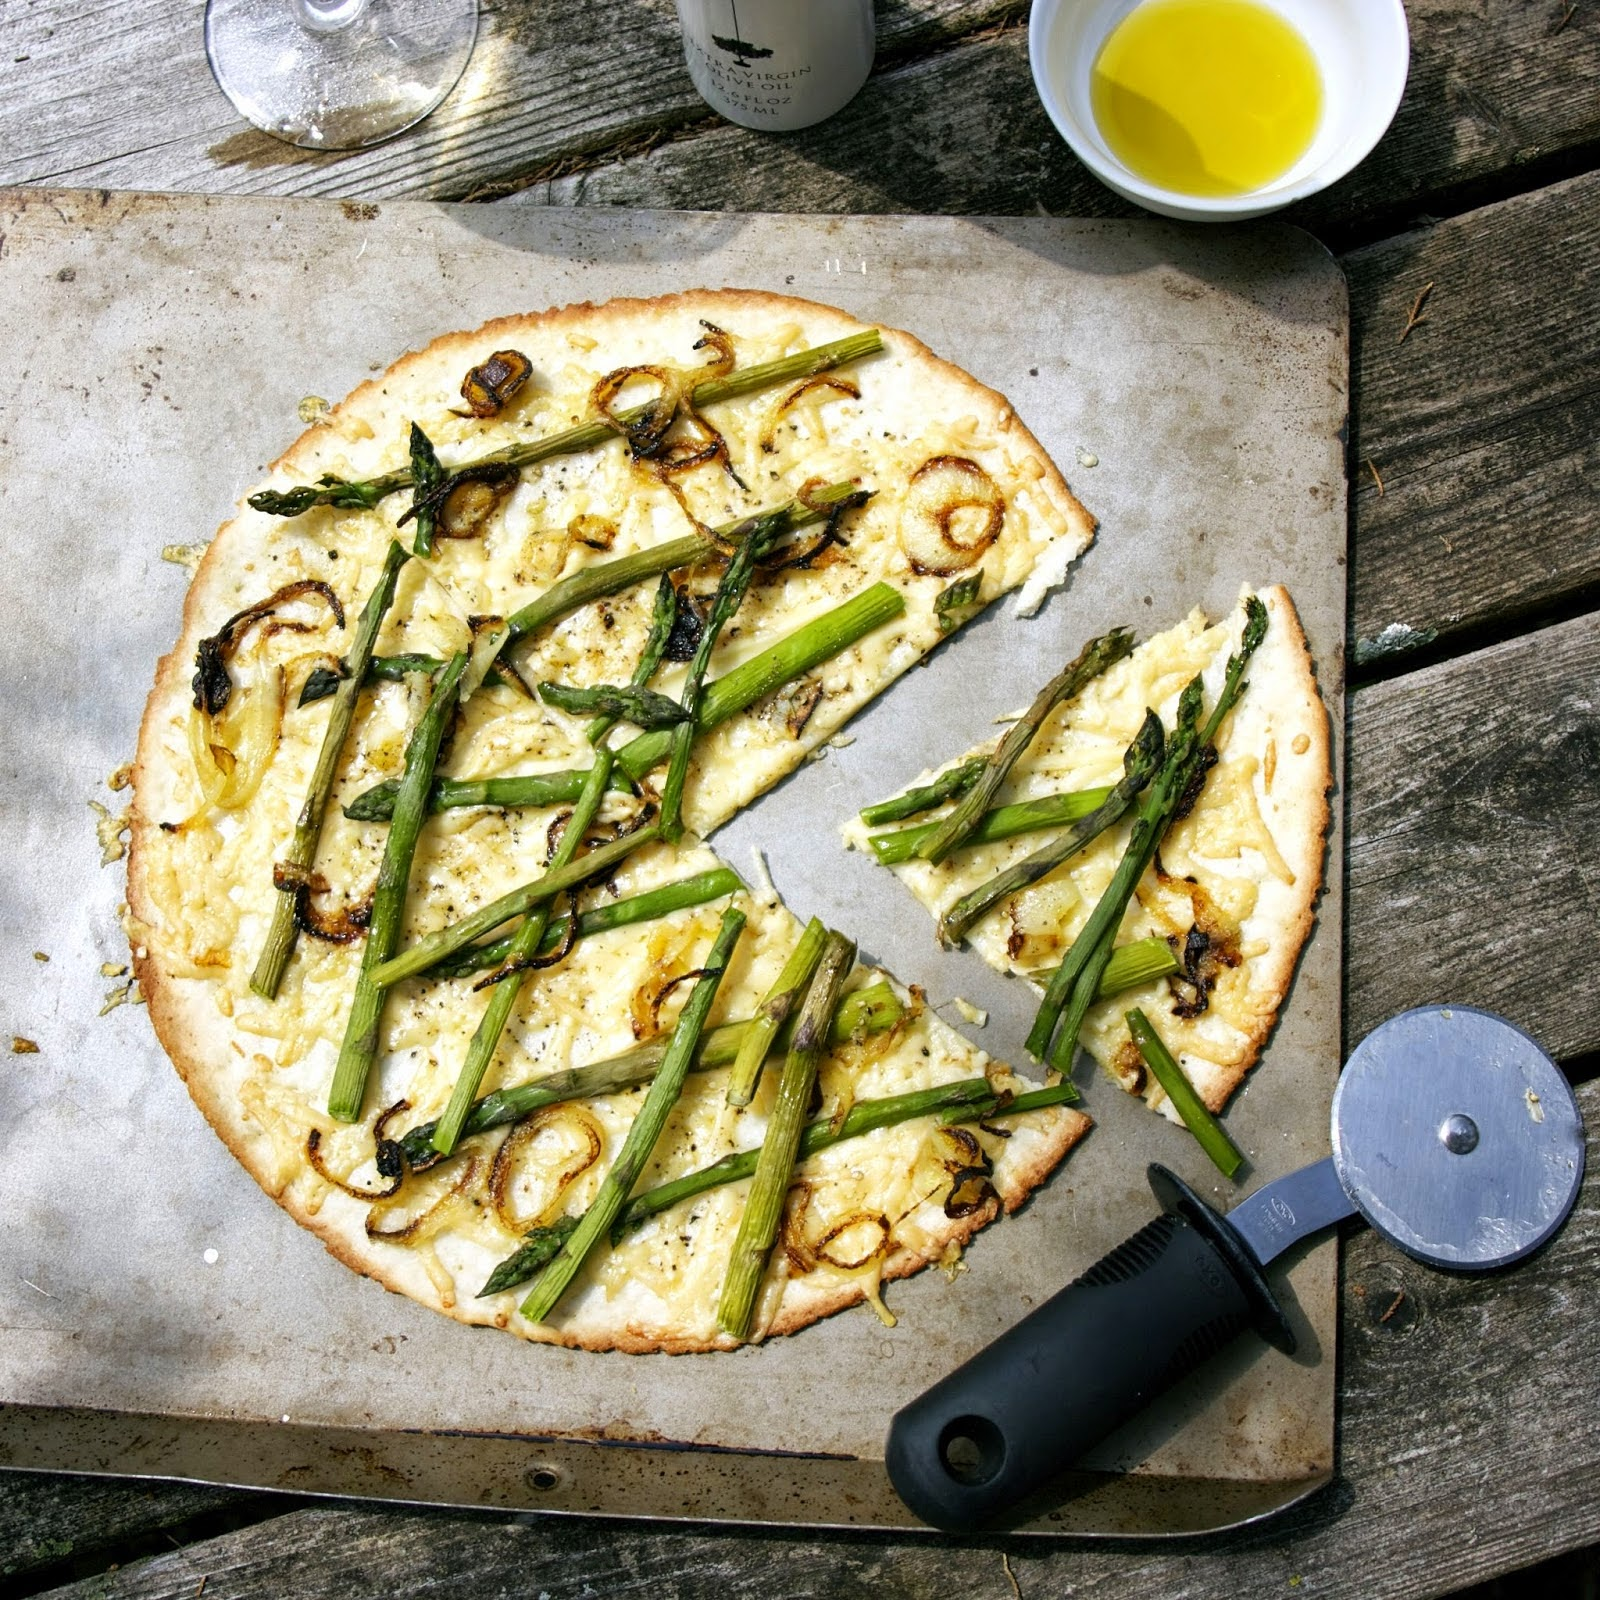 http://www.simplelivingeating.com/2014/05/asparagus-pizza-gluten-free-river.html